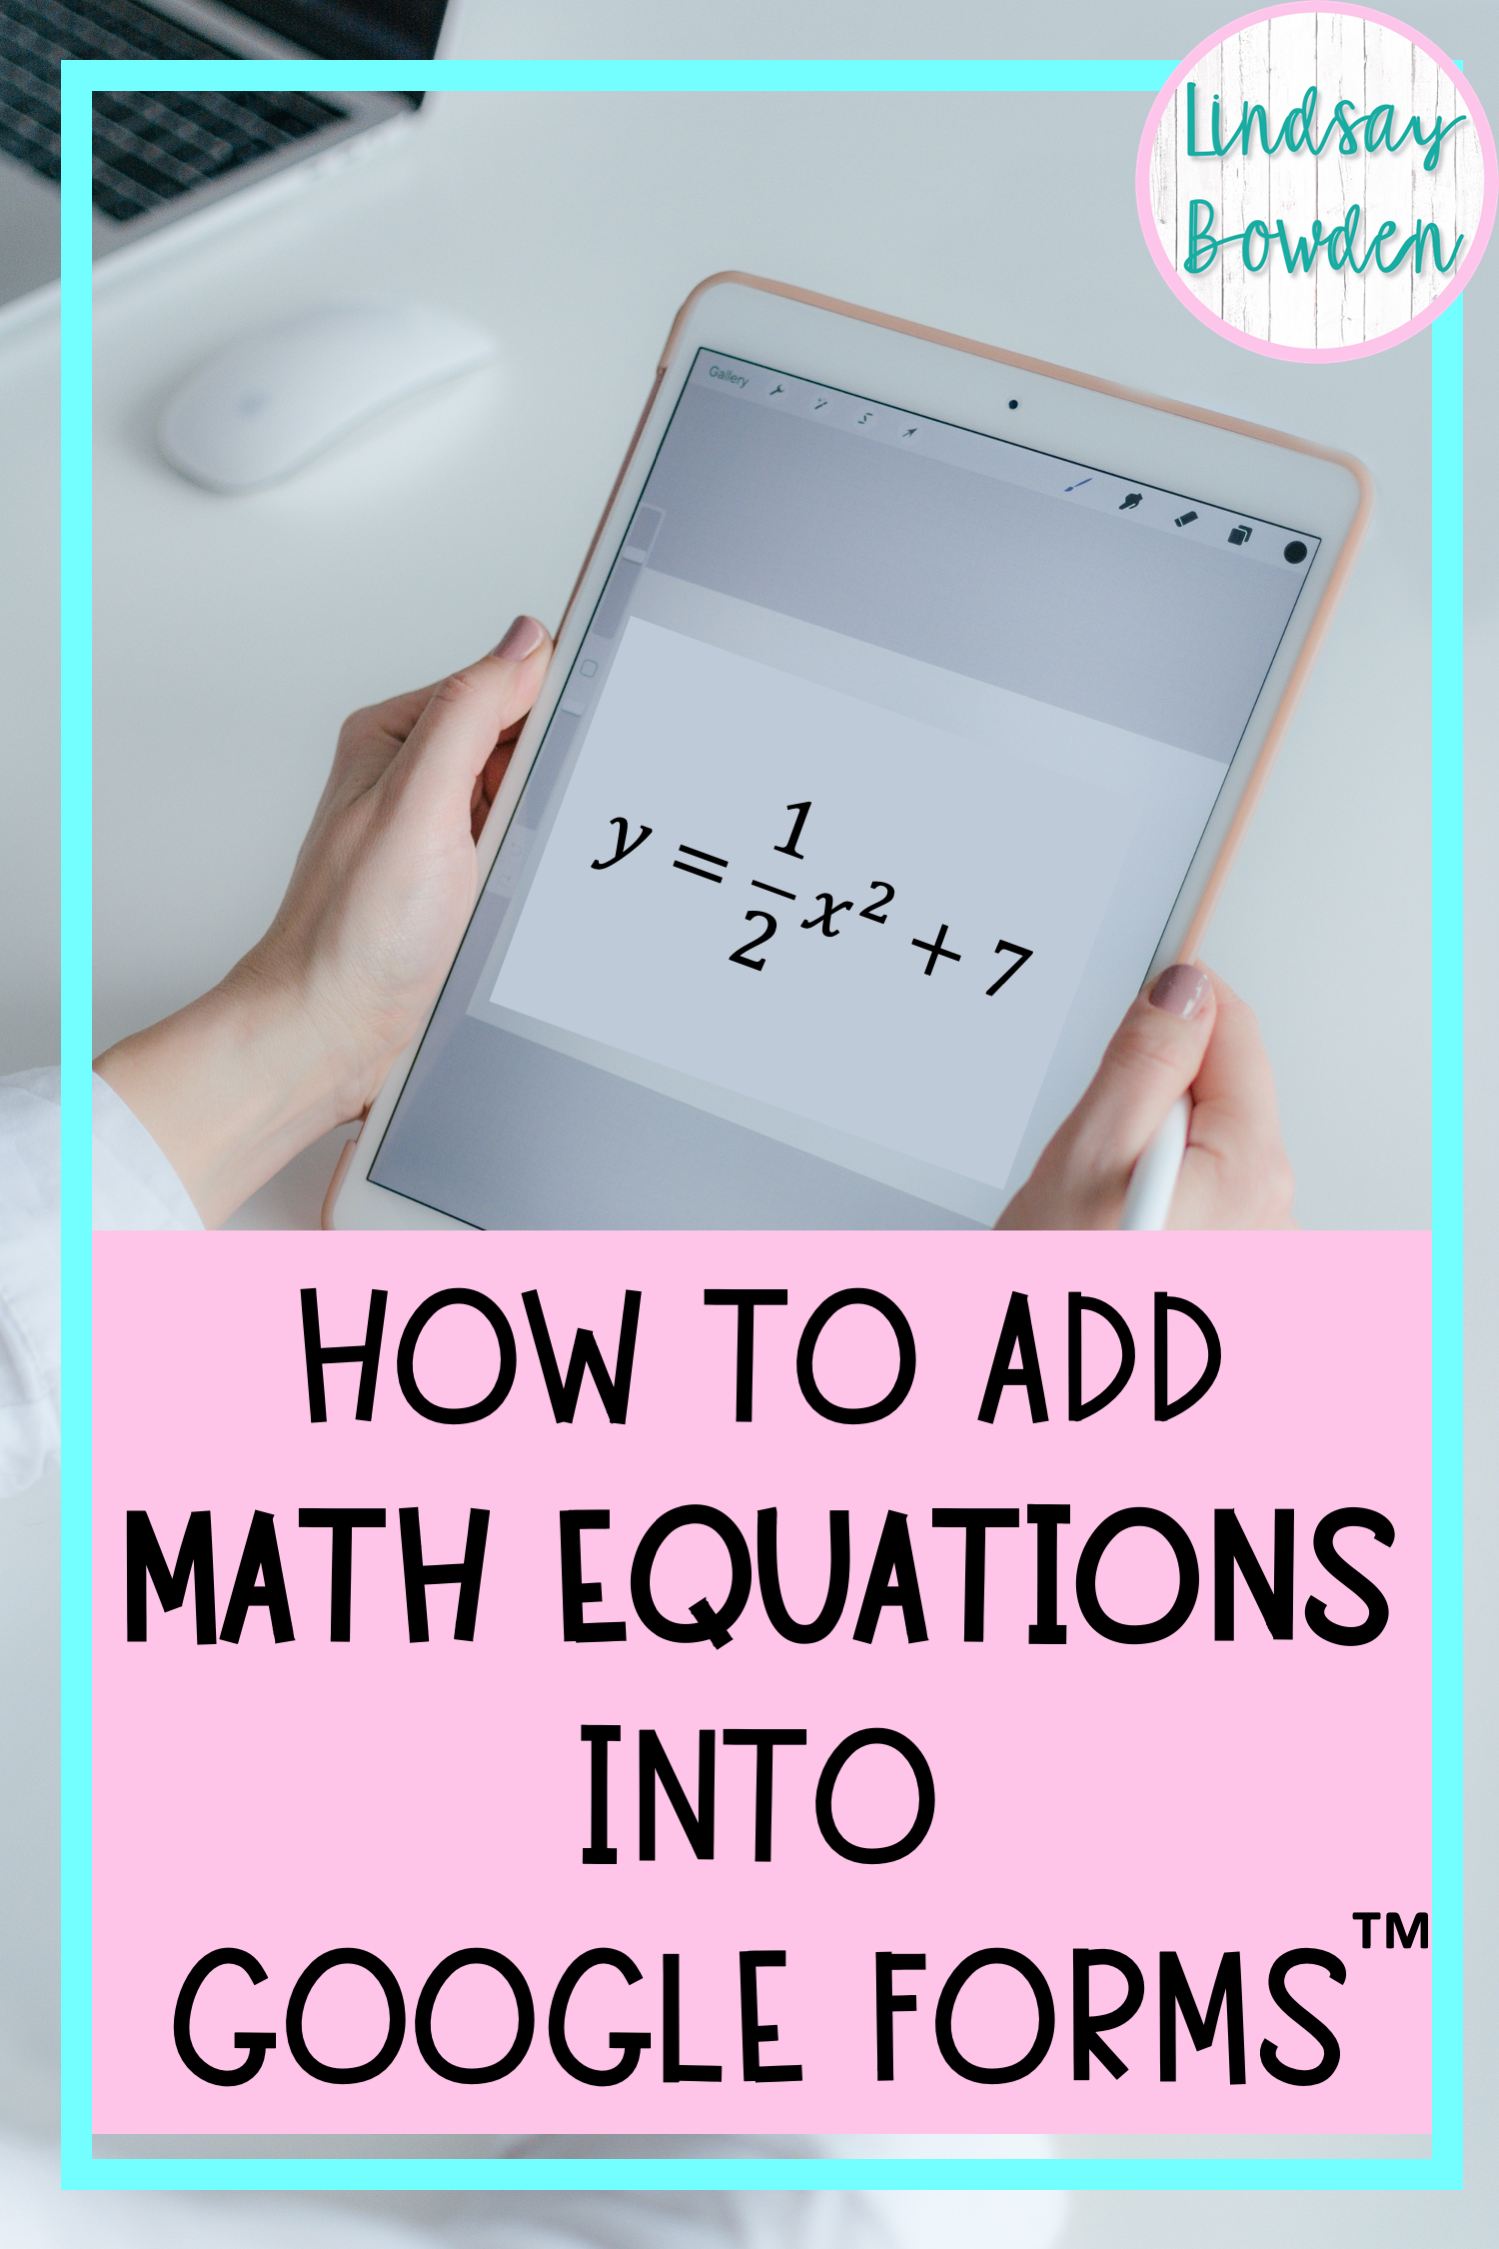 How To Insert Math Equations In Google Forms Lindsay Bowden In 2020 Equations Math Facts One Step Equations